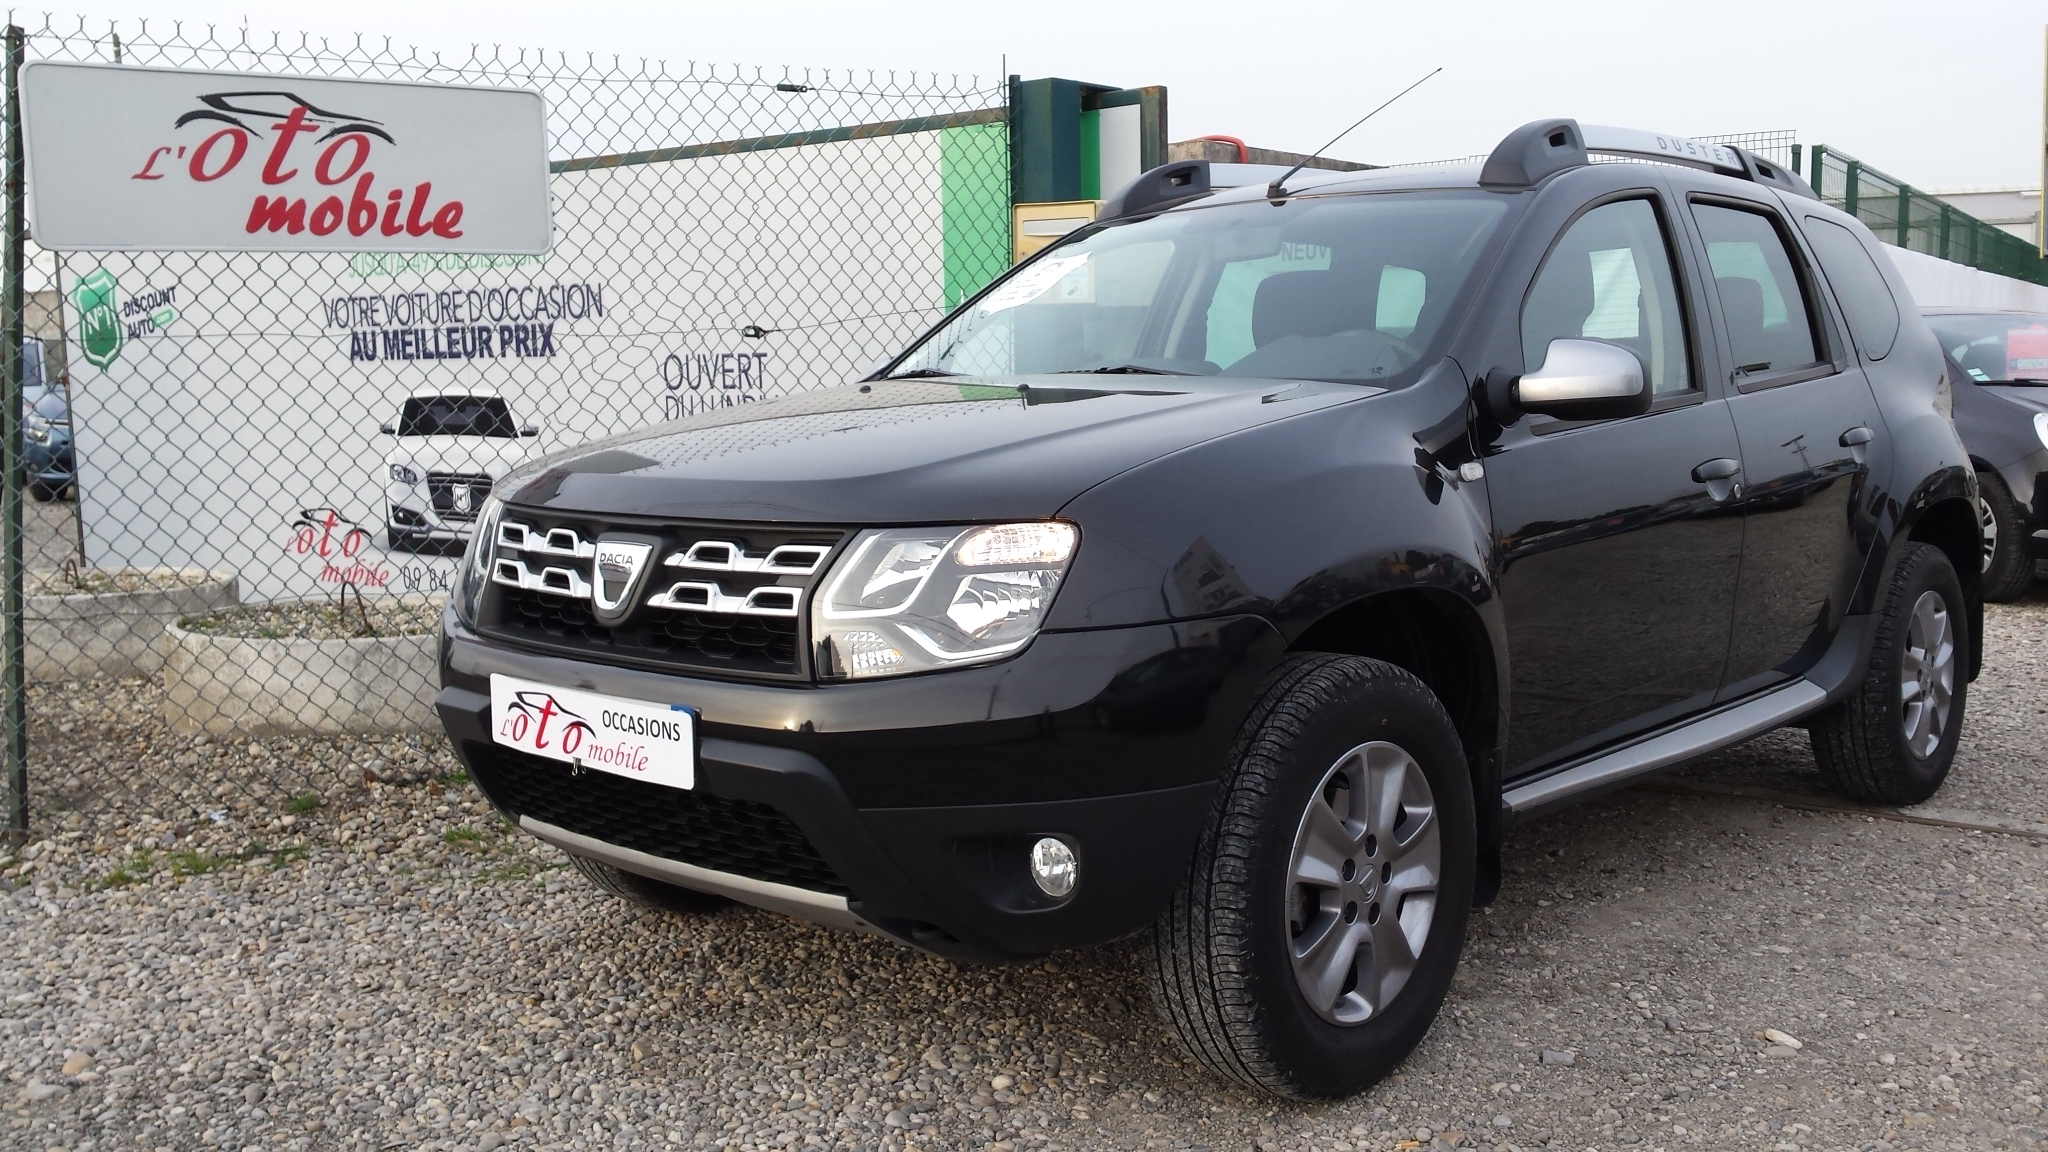 voiture occasion dacia duster voiture dacia duster occasion diesel 2014 31571 km voiture. Black Bedroom Furniture Sets. Home Design Ideas